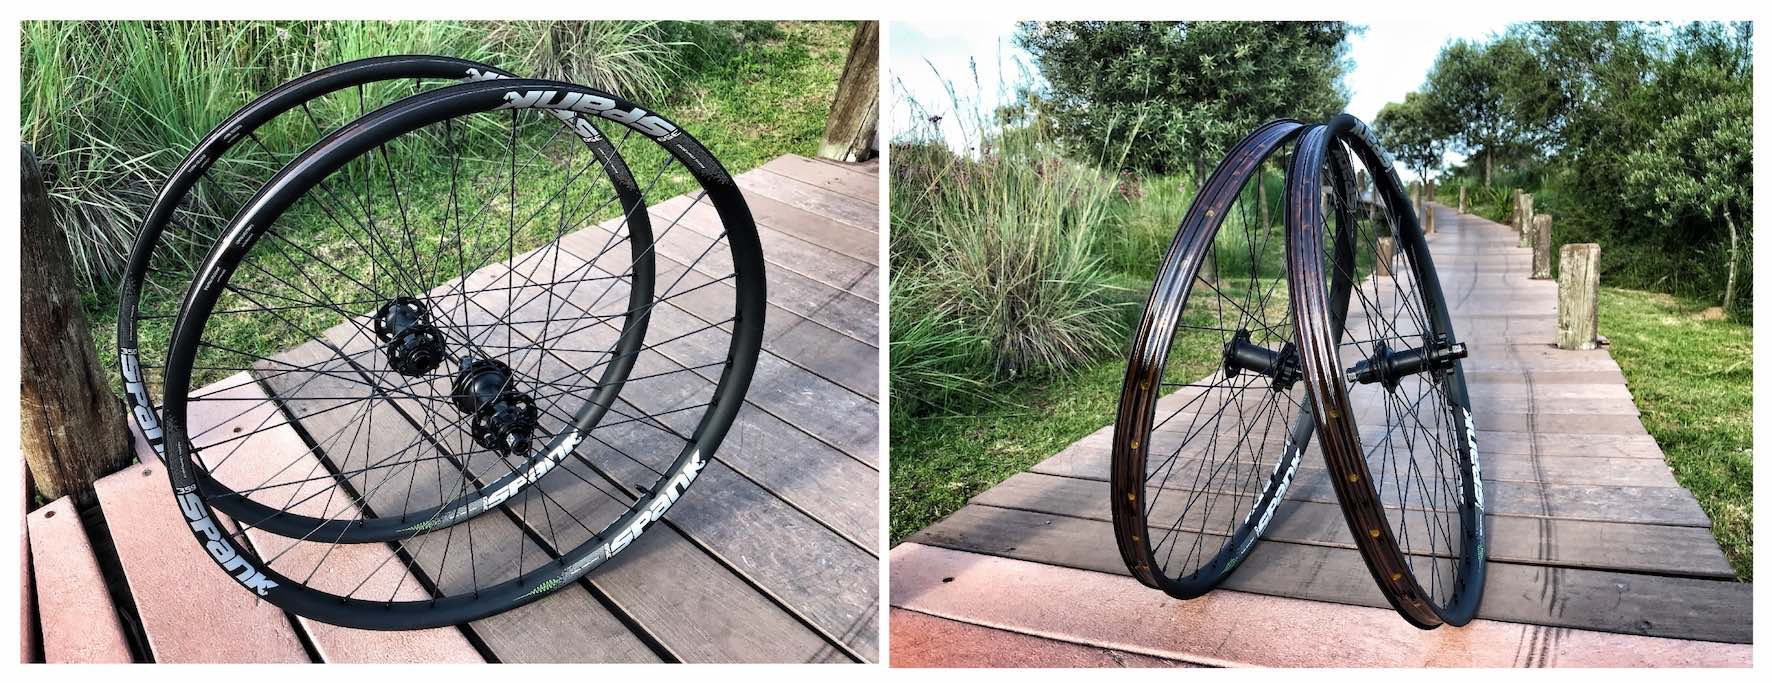 The all new Spank 350/359 Vibrocore Tuned Wheelset